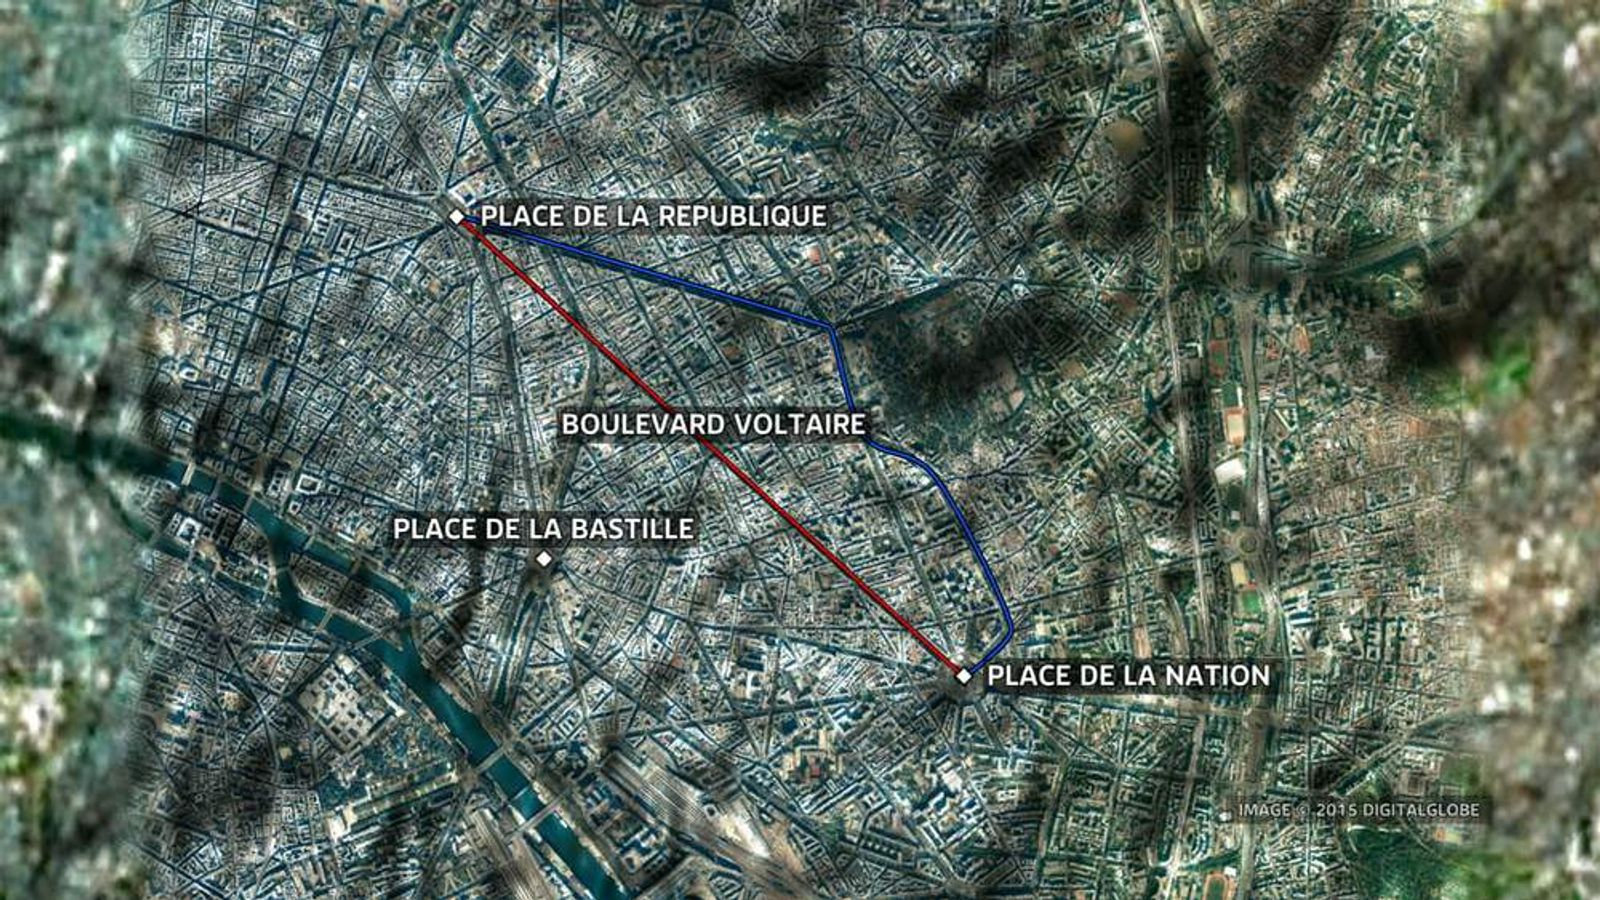 The route of the march in Paris on Sunday.